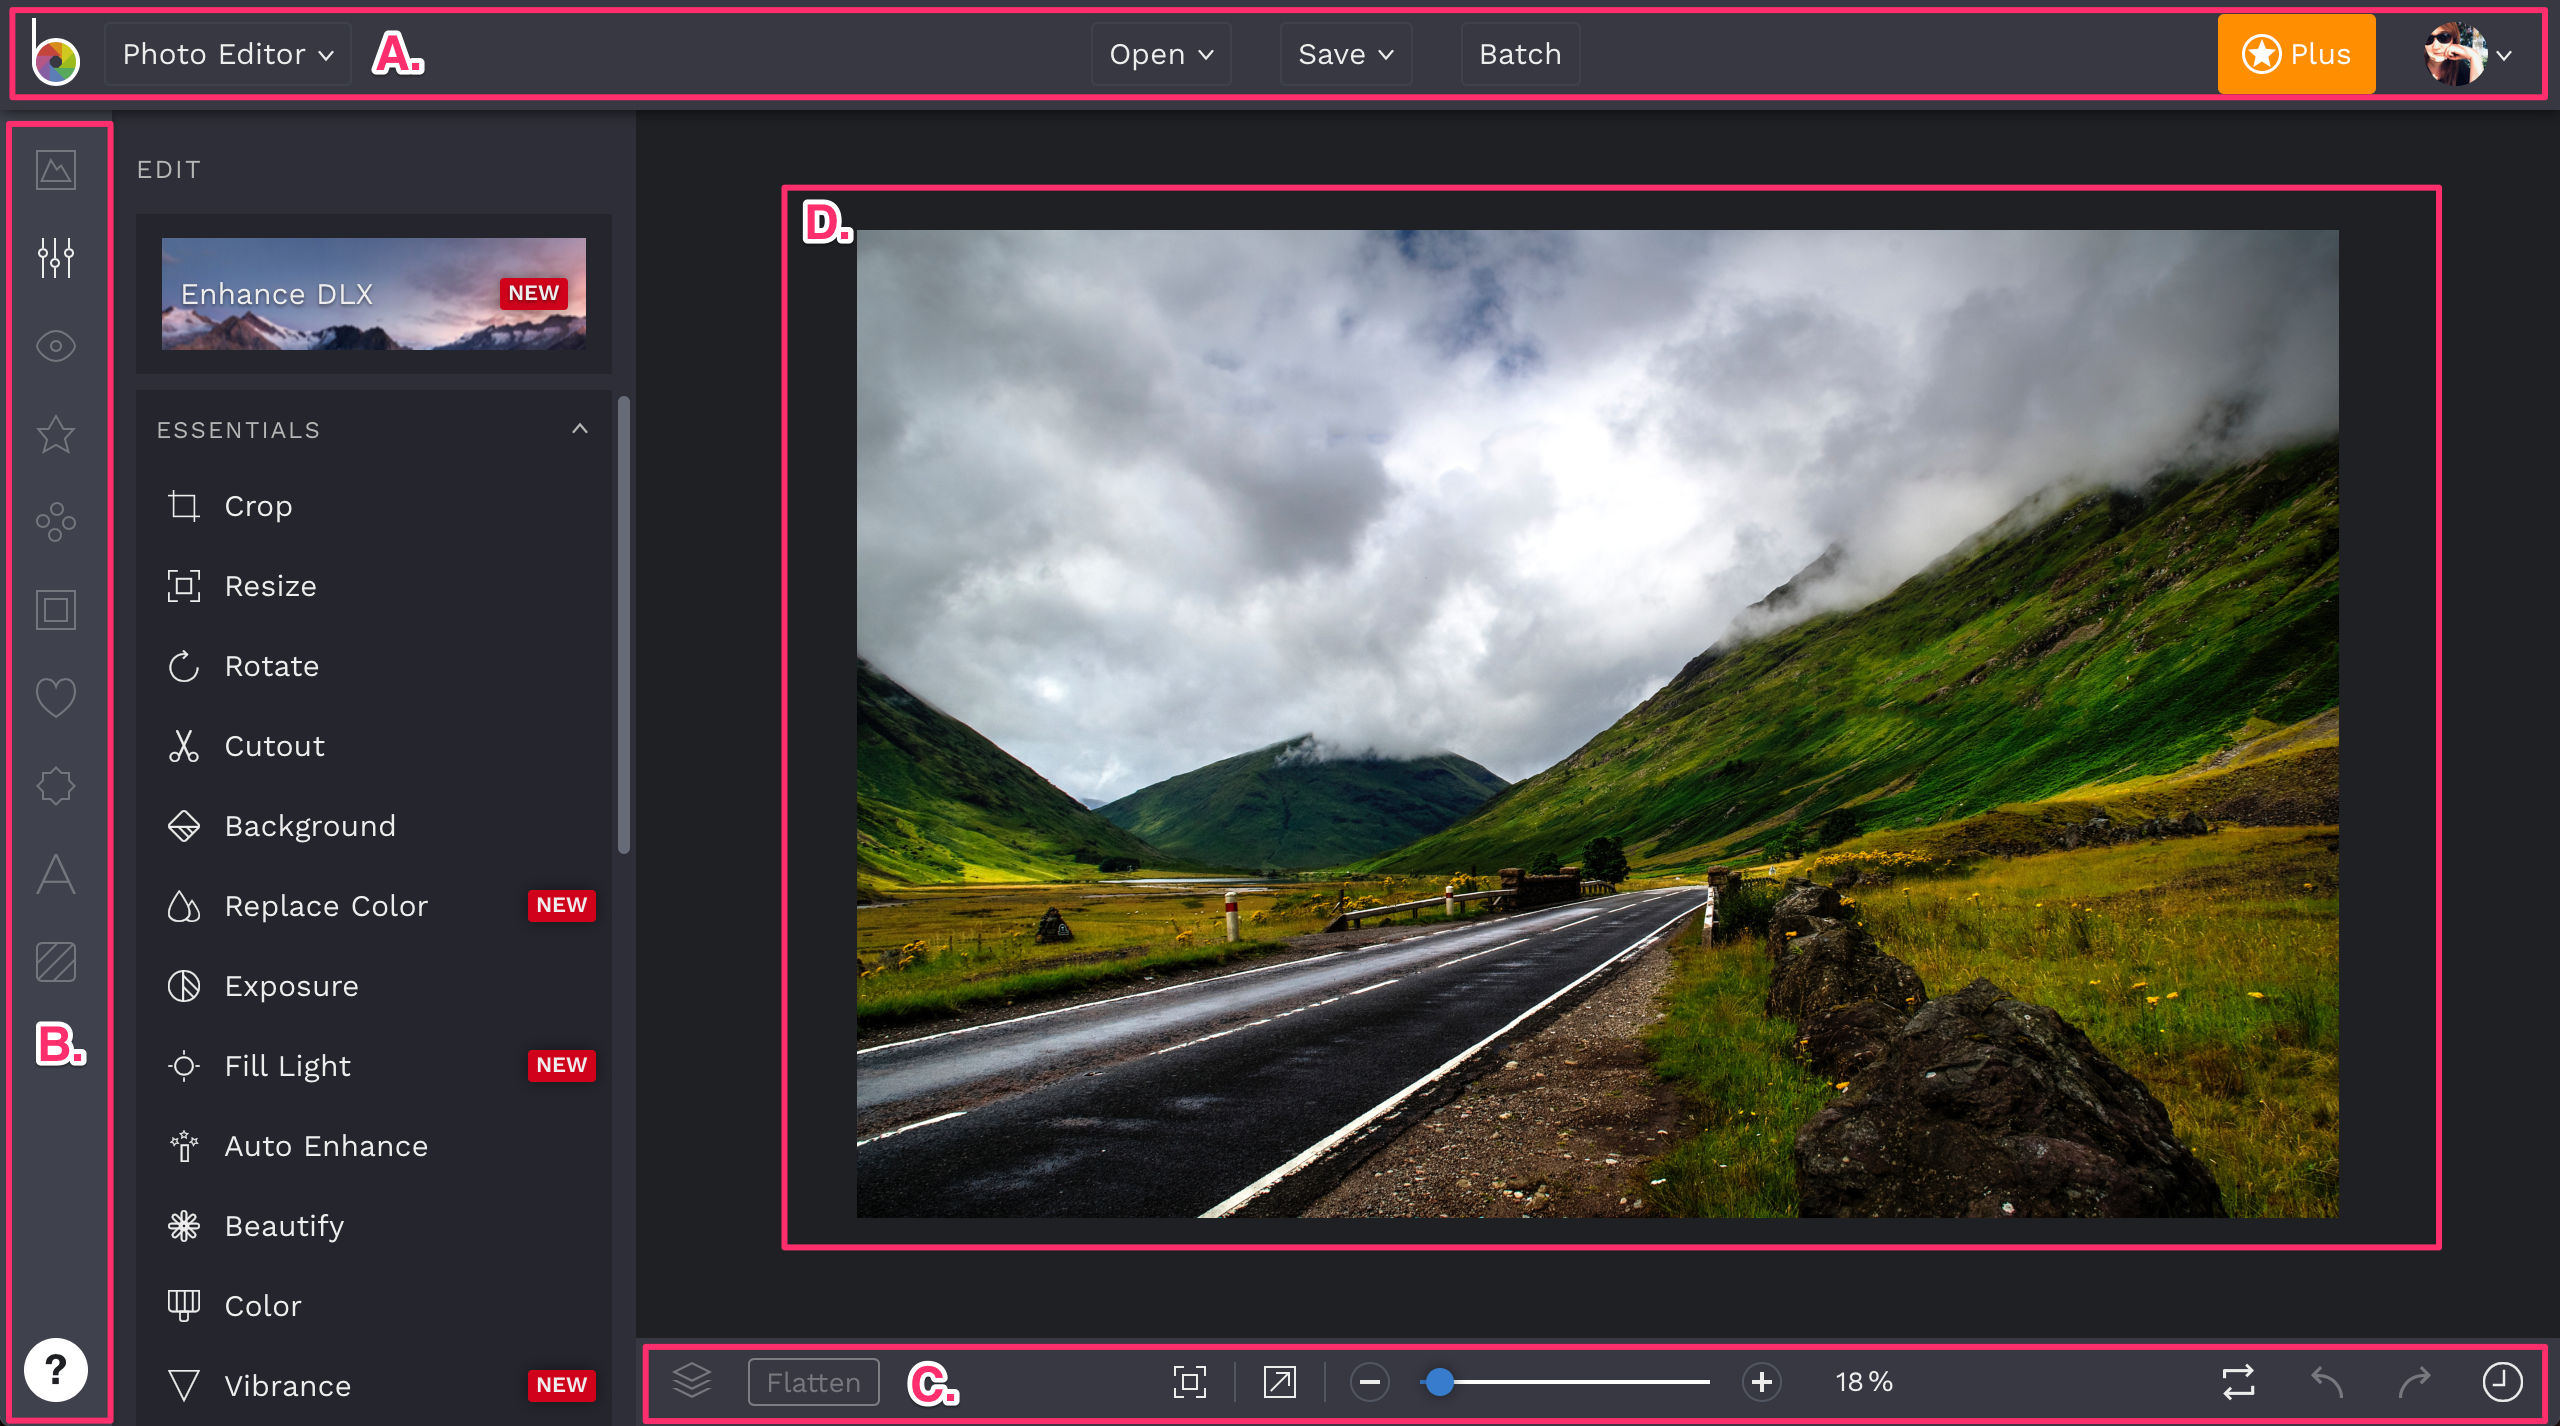 Photo Editor Workspace separated into sections.